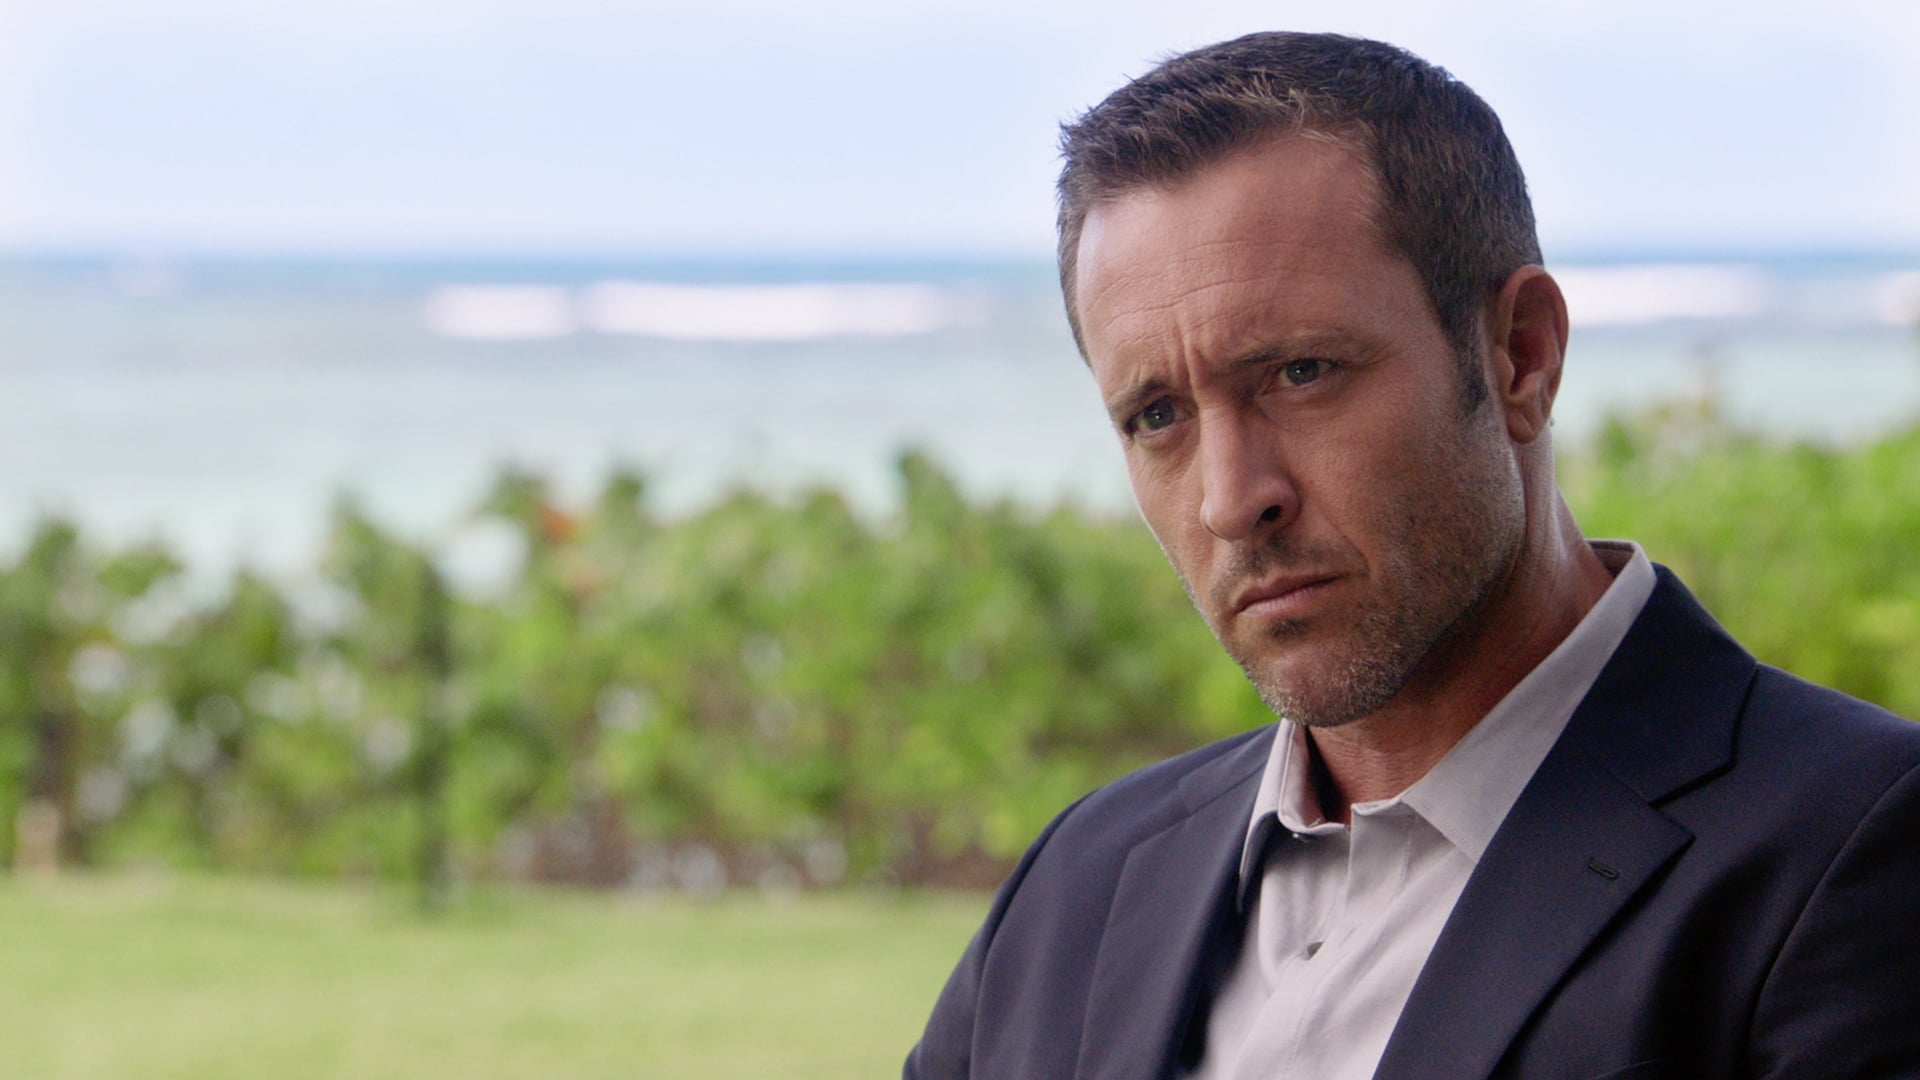 Hawaii Five-0 - Season 8 Episode 5 : Kama'oma'o, ka 'aina huli hana (The Land of Activities)